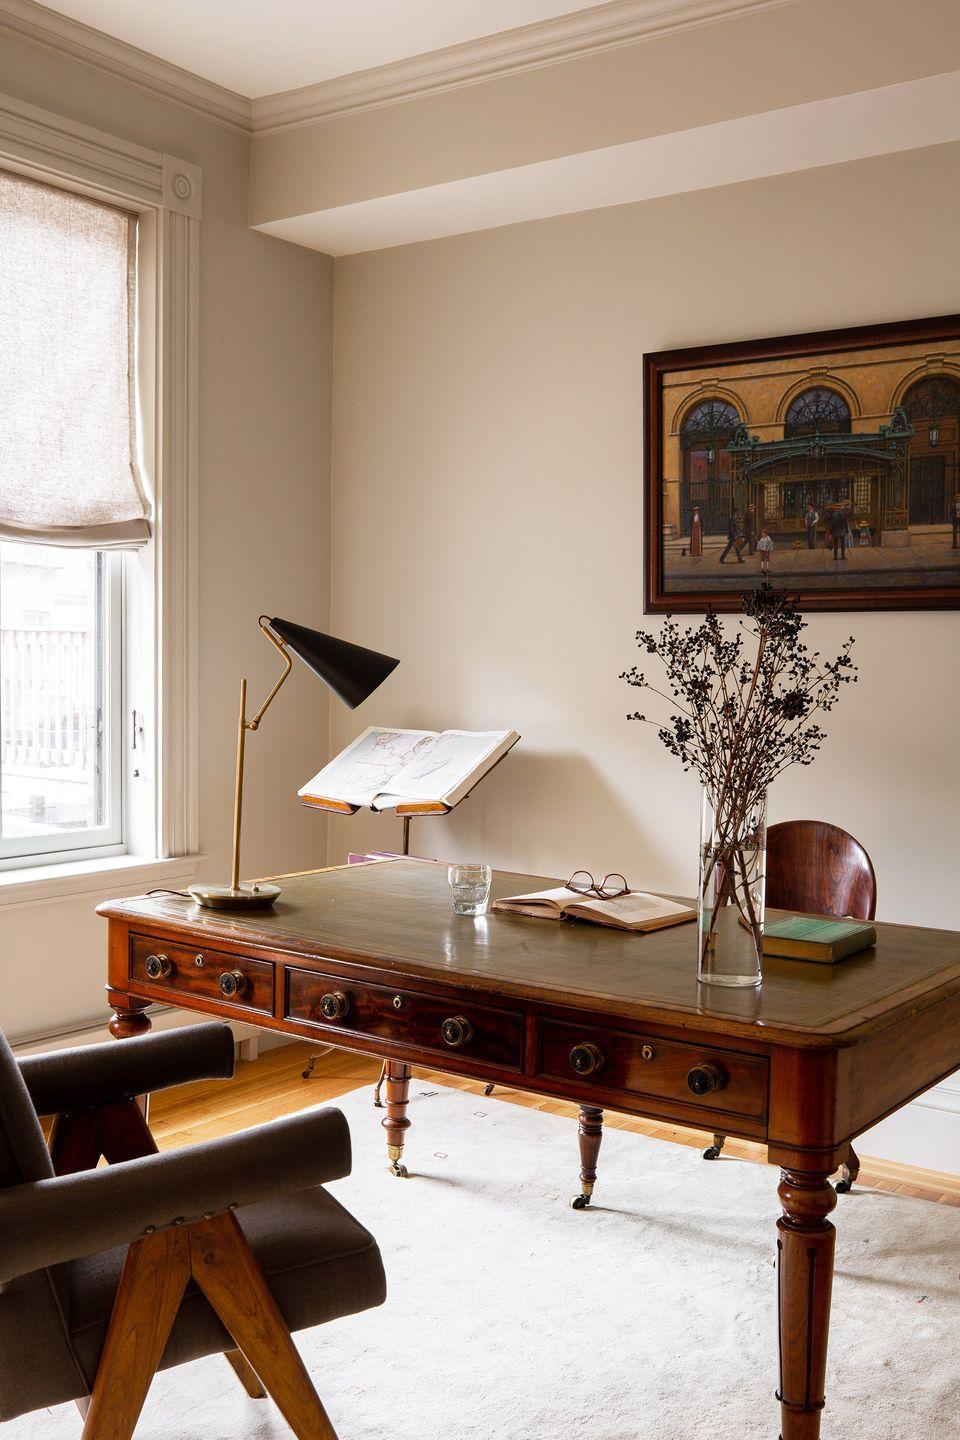 """<p>Modern lighting and seating blend beautifully with antiques in this home office designed by <a href=""""https://www.jaejoodesigns.com/"""" rel=""""nofollow noopener"""" target=""""_blank"""" data-ylk=""""slk:Jae Joo"""" class=""""link rapid-noclick-resp"""">Jae Joo</a>. Tasked with redecorating this Boston rowhouse, she made sure to honor its historical integrity while also bringing it into the 21st century. Cream walls also prove that white isn't always the best route. </p>"""